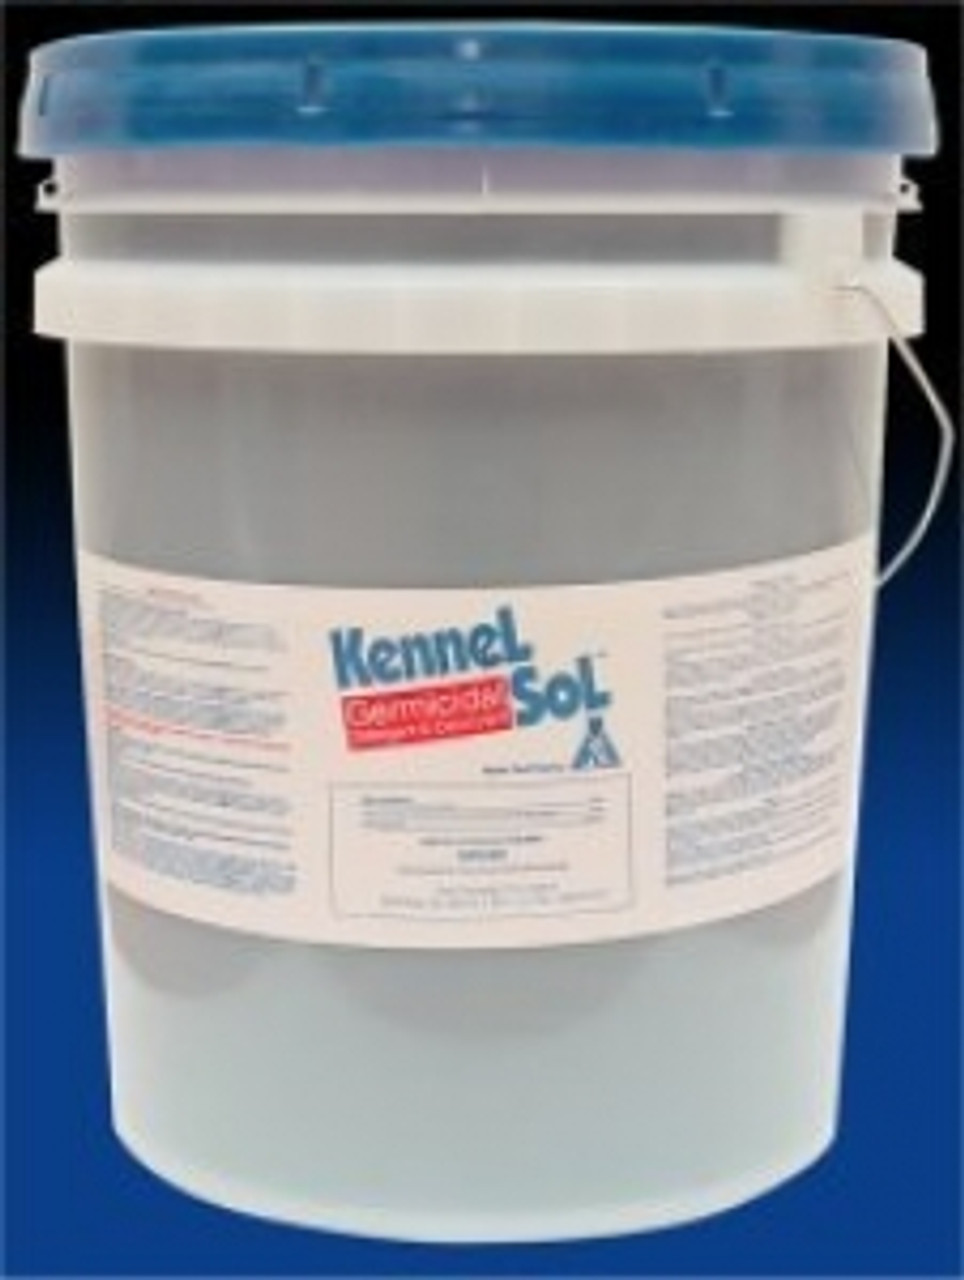 KENNELSOL DISINFECTANT 5 GAL (FOB)